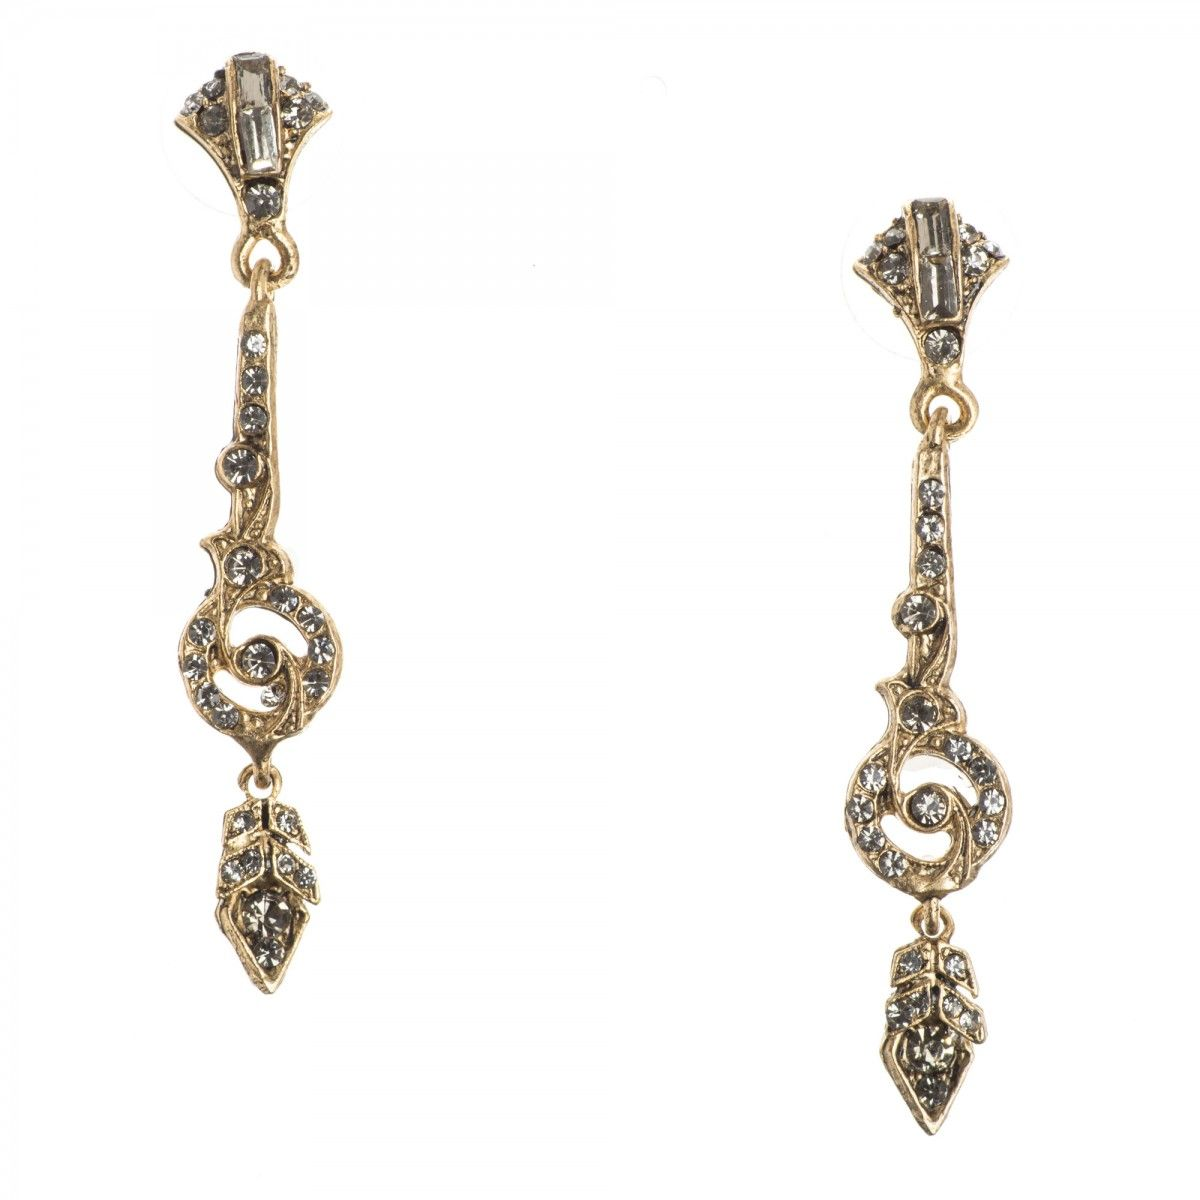 Miss Ellie Nyc Earrings Gold Deco Delight Long Slim Crystal Posts